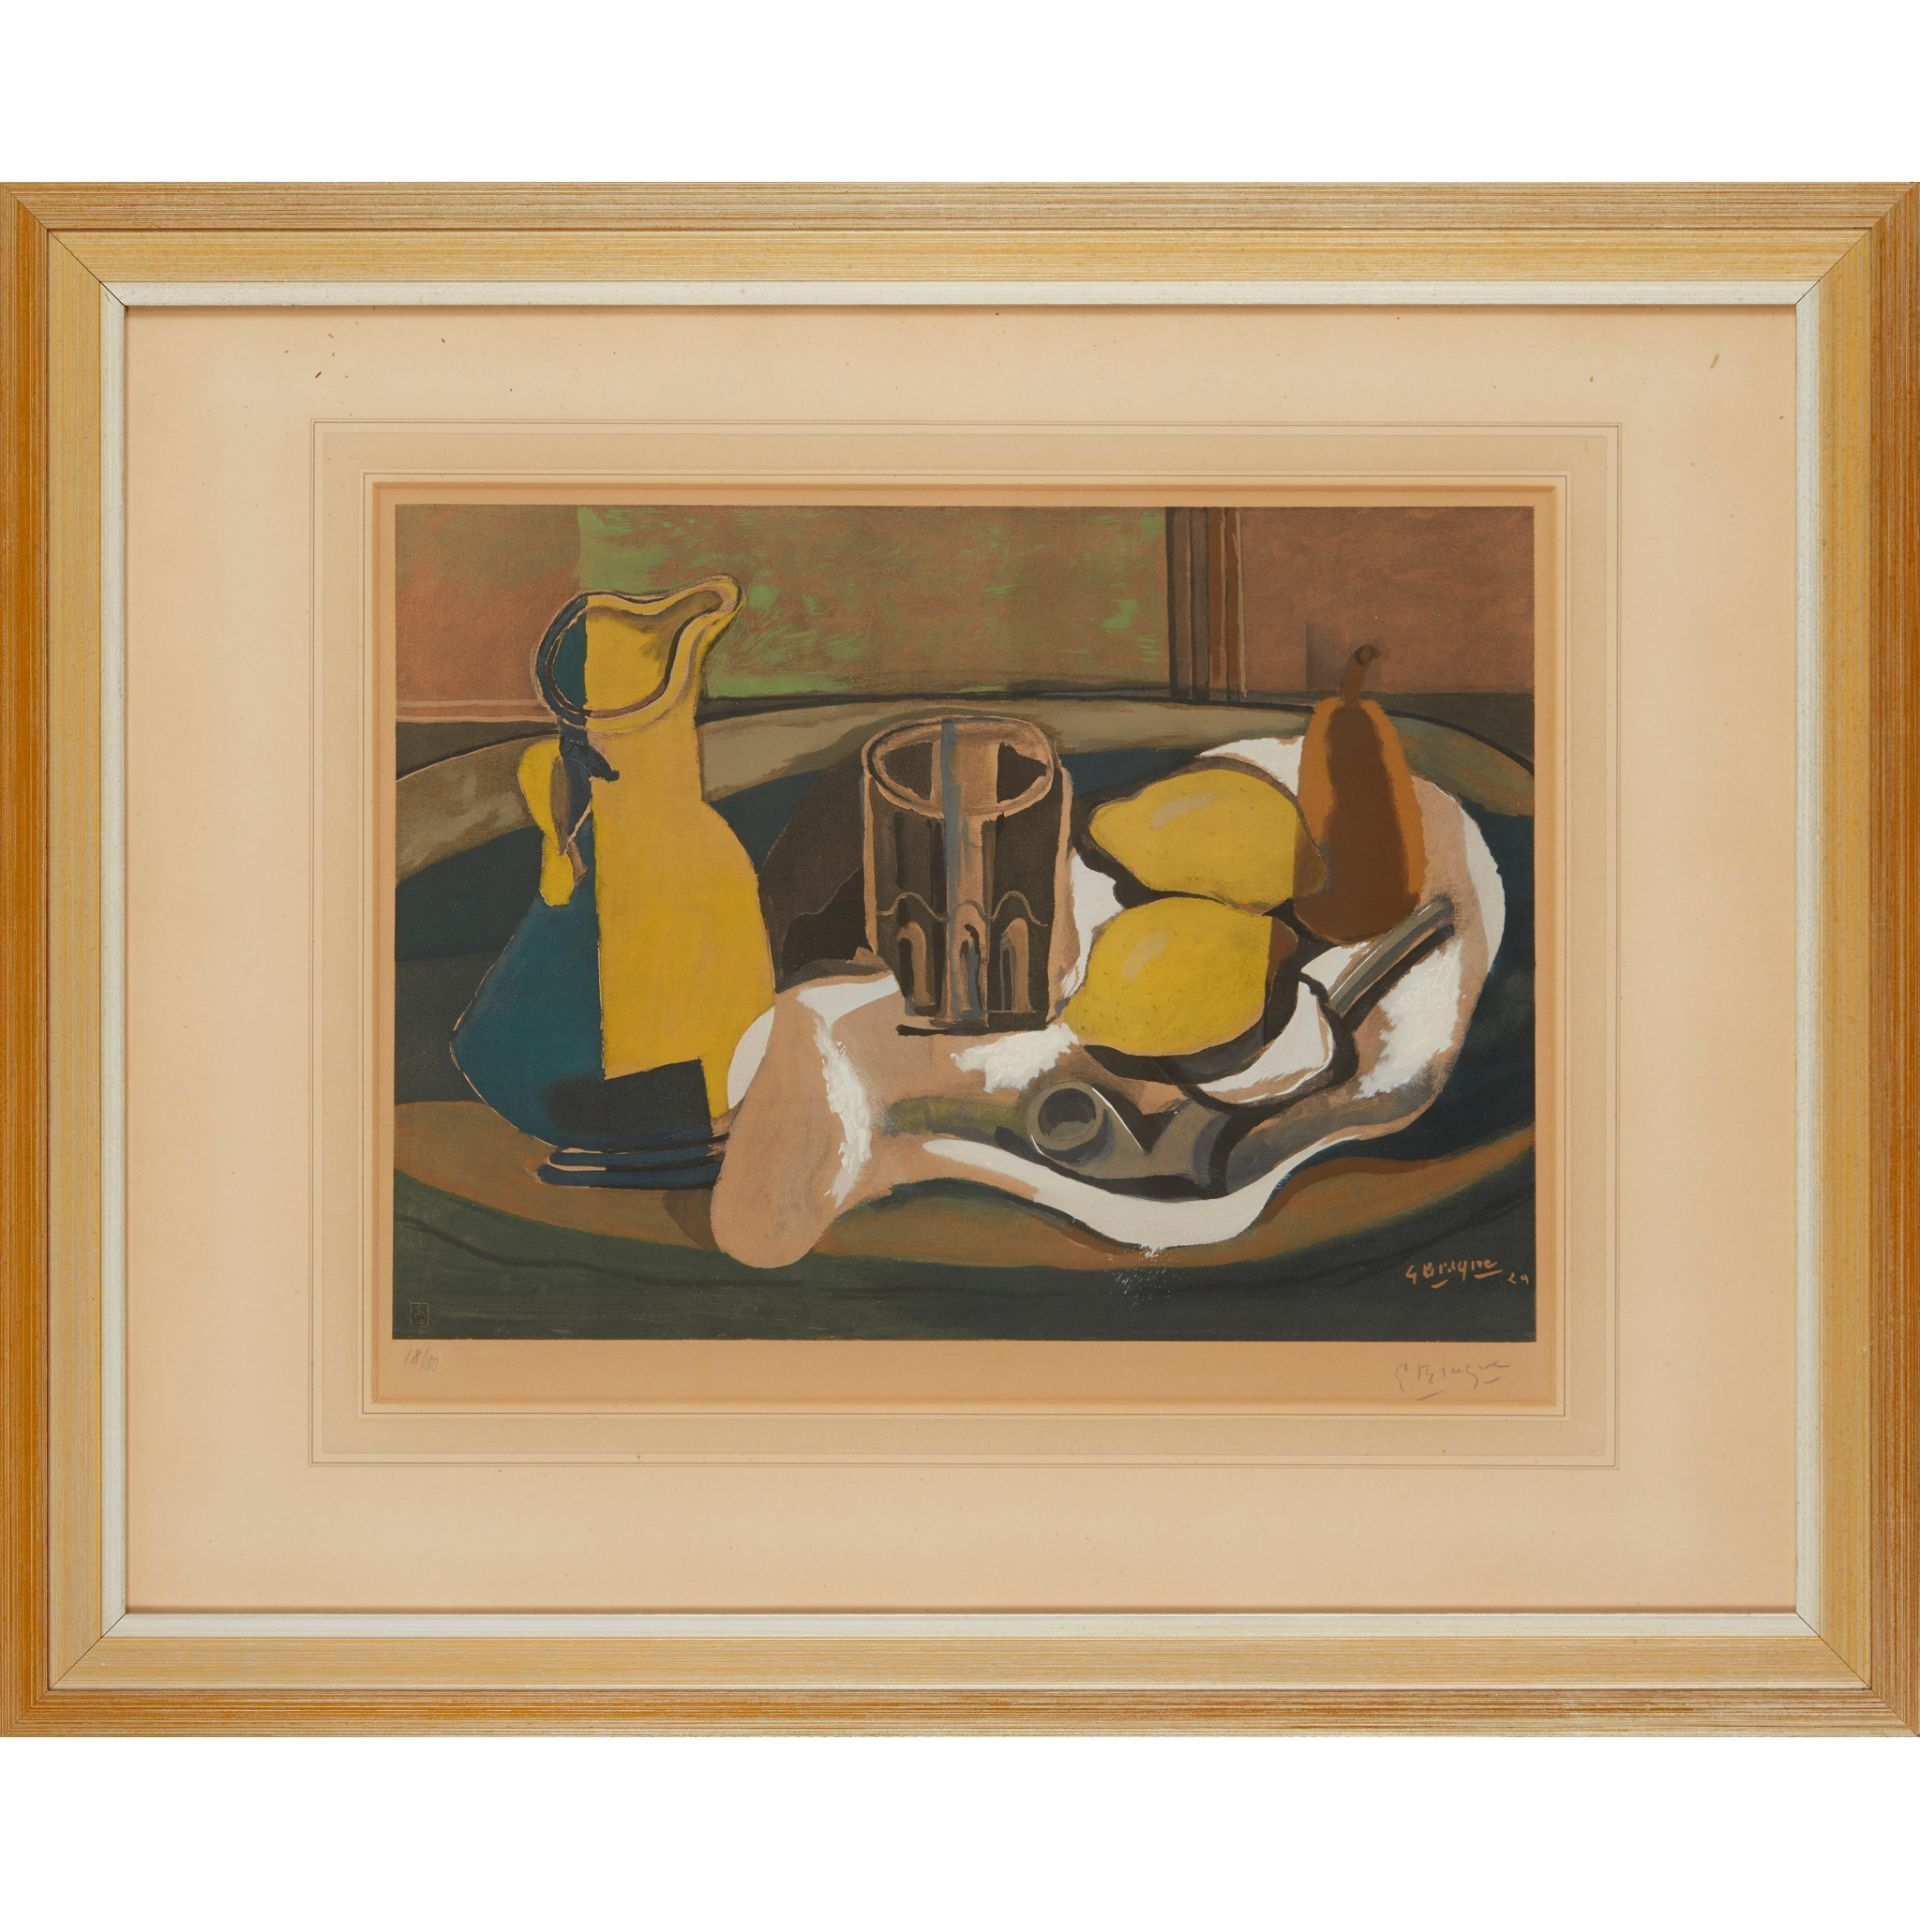 § GEORGES BRAQUE (FRENCH 1882-1963), AFTER STILL-LIFE WITH TWO LEMONS AND A PIPE - Image 3 of 4